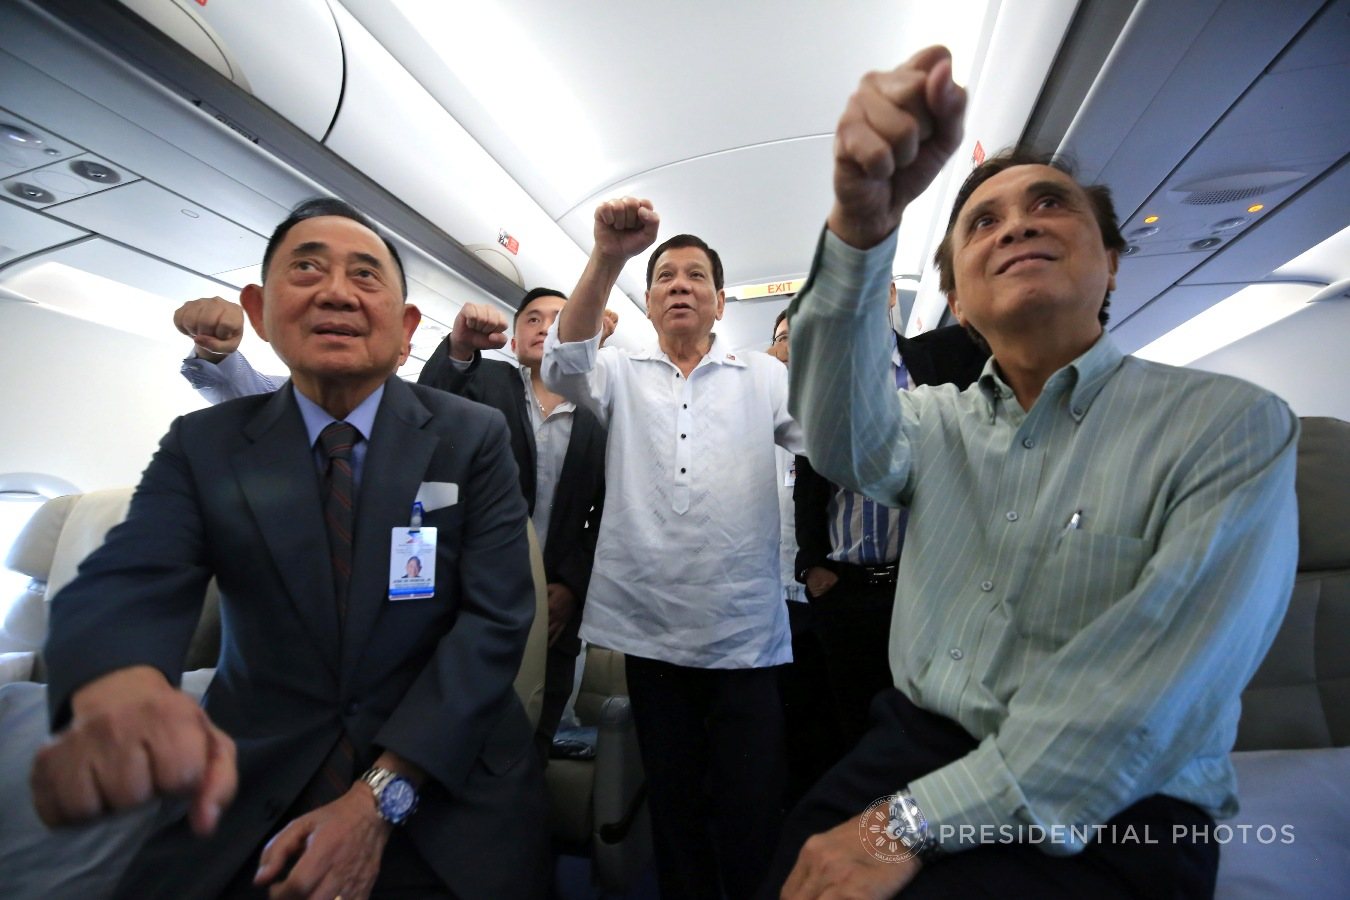 President Rodrigo Roa Duterte does his signature pose with the members of his delegation to the 2017 APEC Economic Leaders' Meeting while on board the Philippine Airlines chartered flight bound for Vietnam on November 8, 2017. ALBERT ALCAIN/PRESIDENTIAL PHOTO